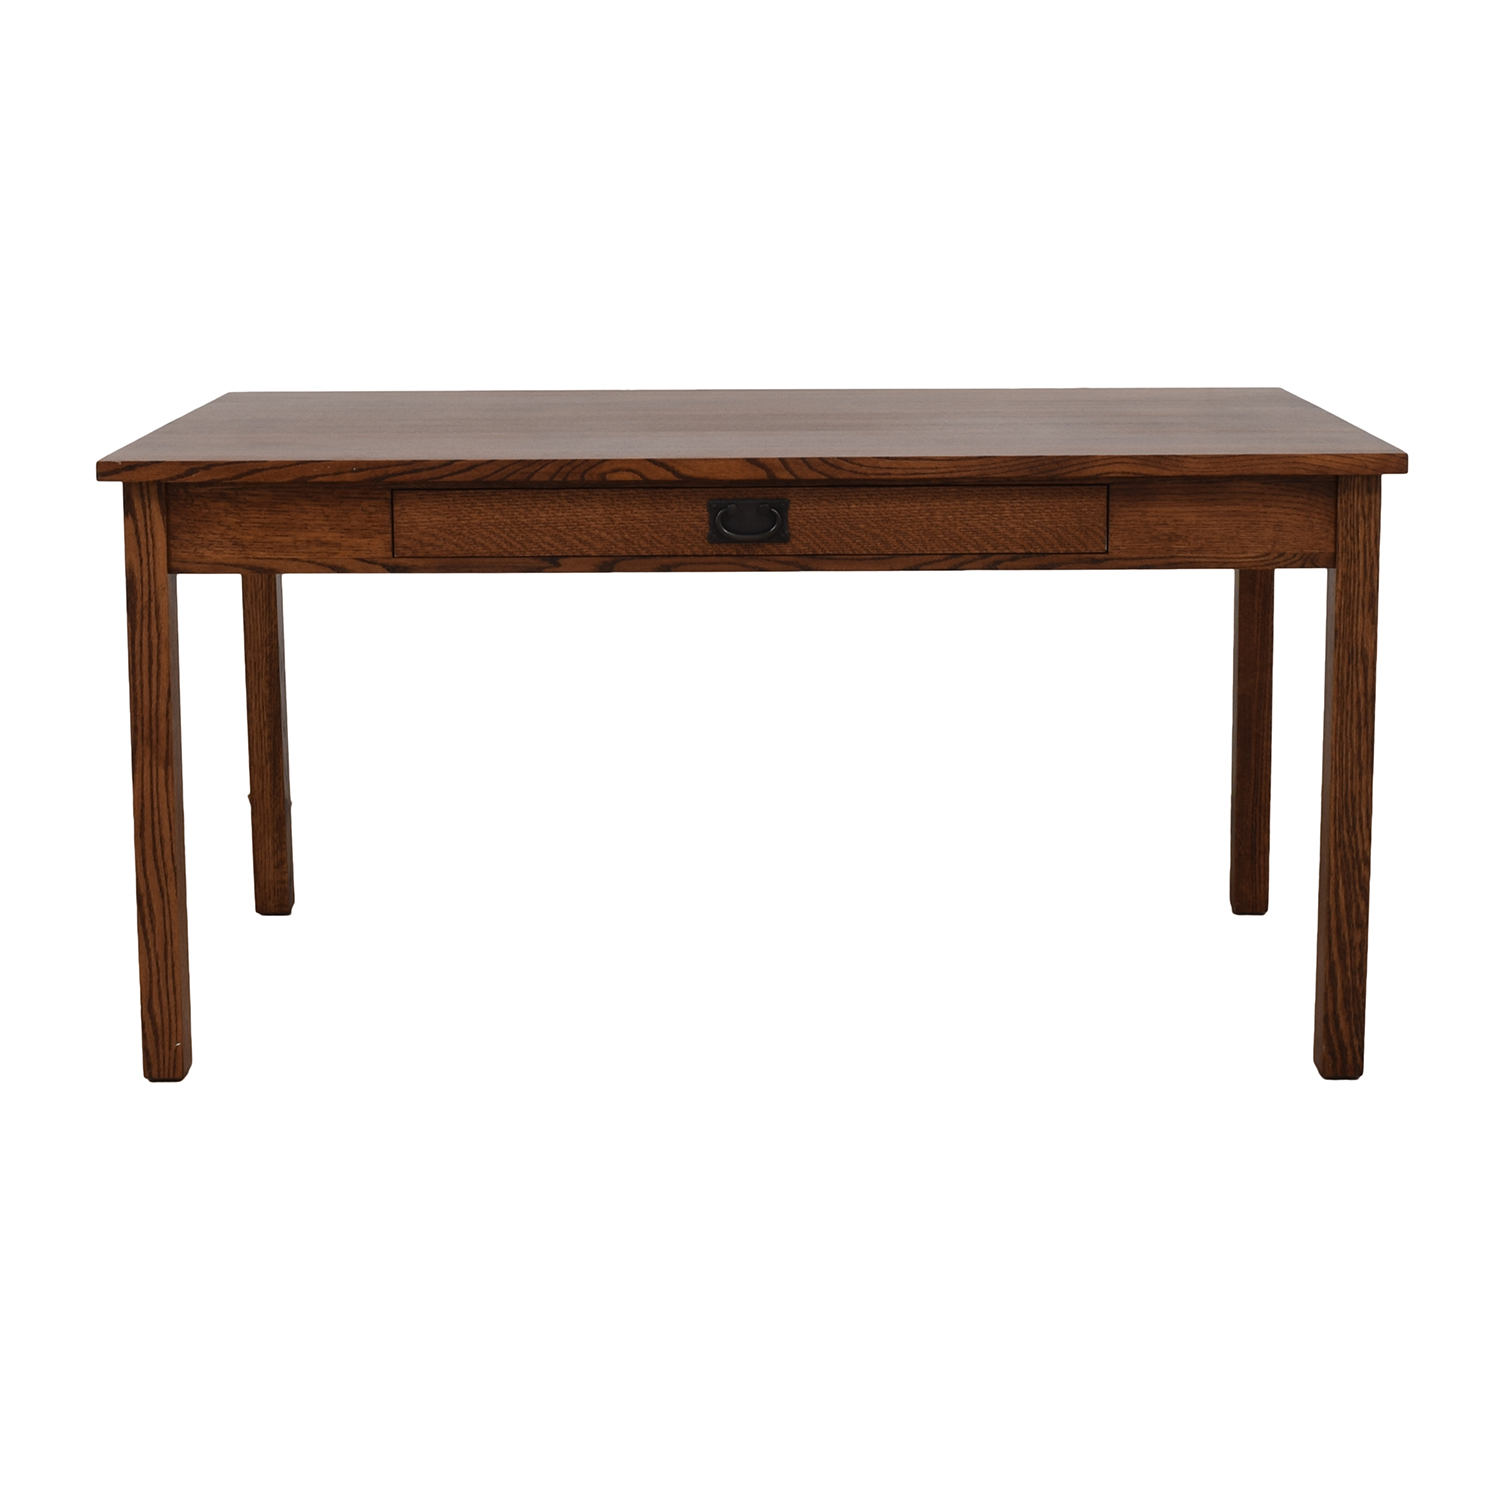 84 Off Mission Style Wood Desk Tables